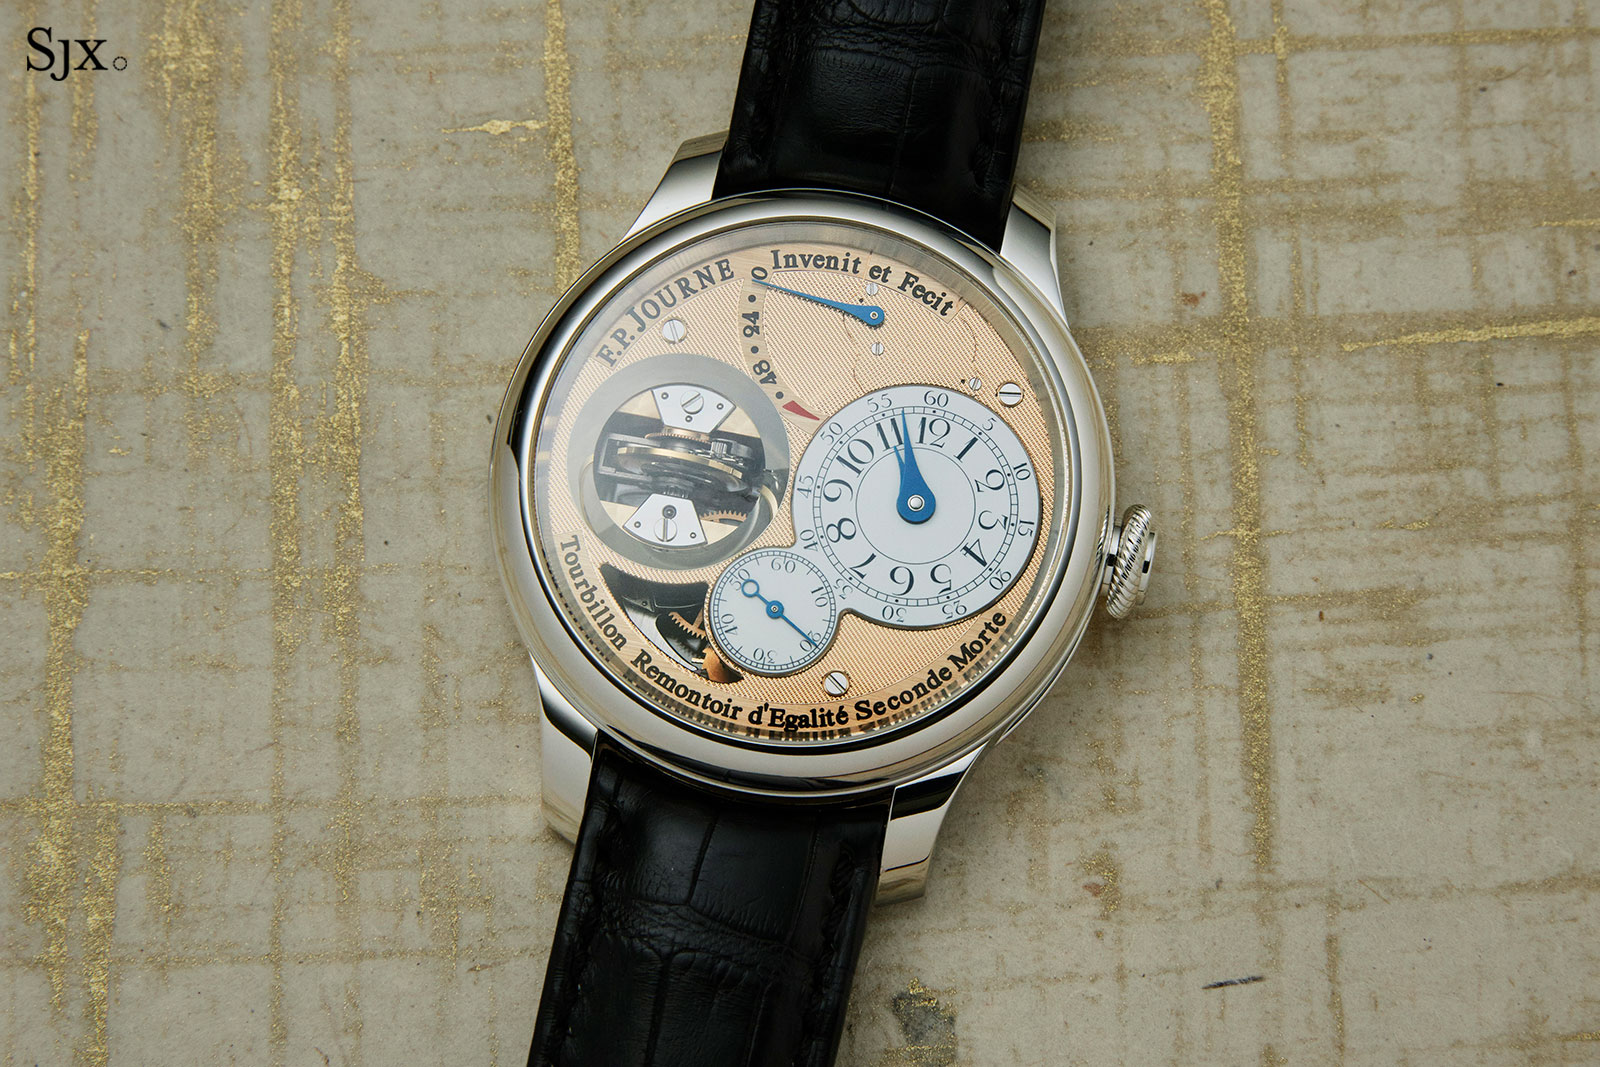 FP Journe Tourbillon Souverain Vertical Pt 1